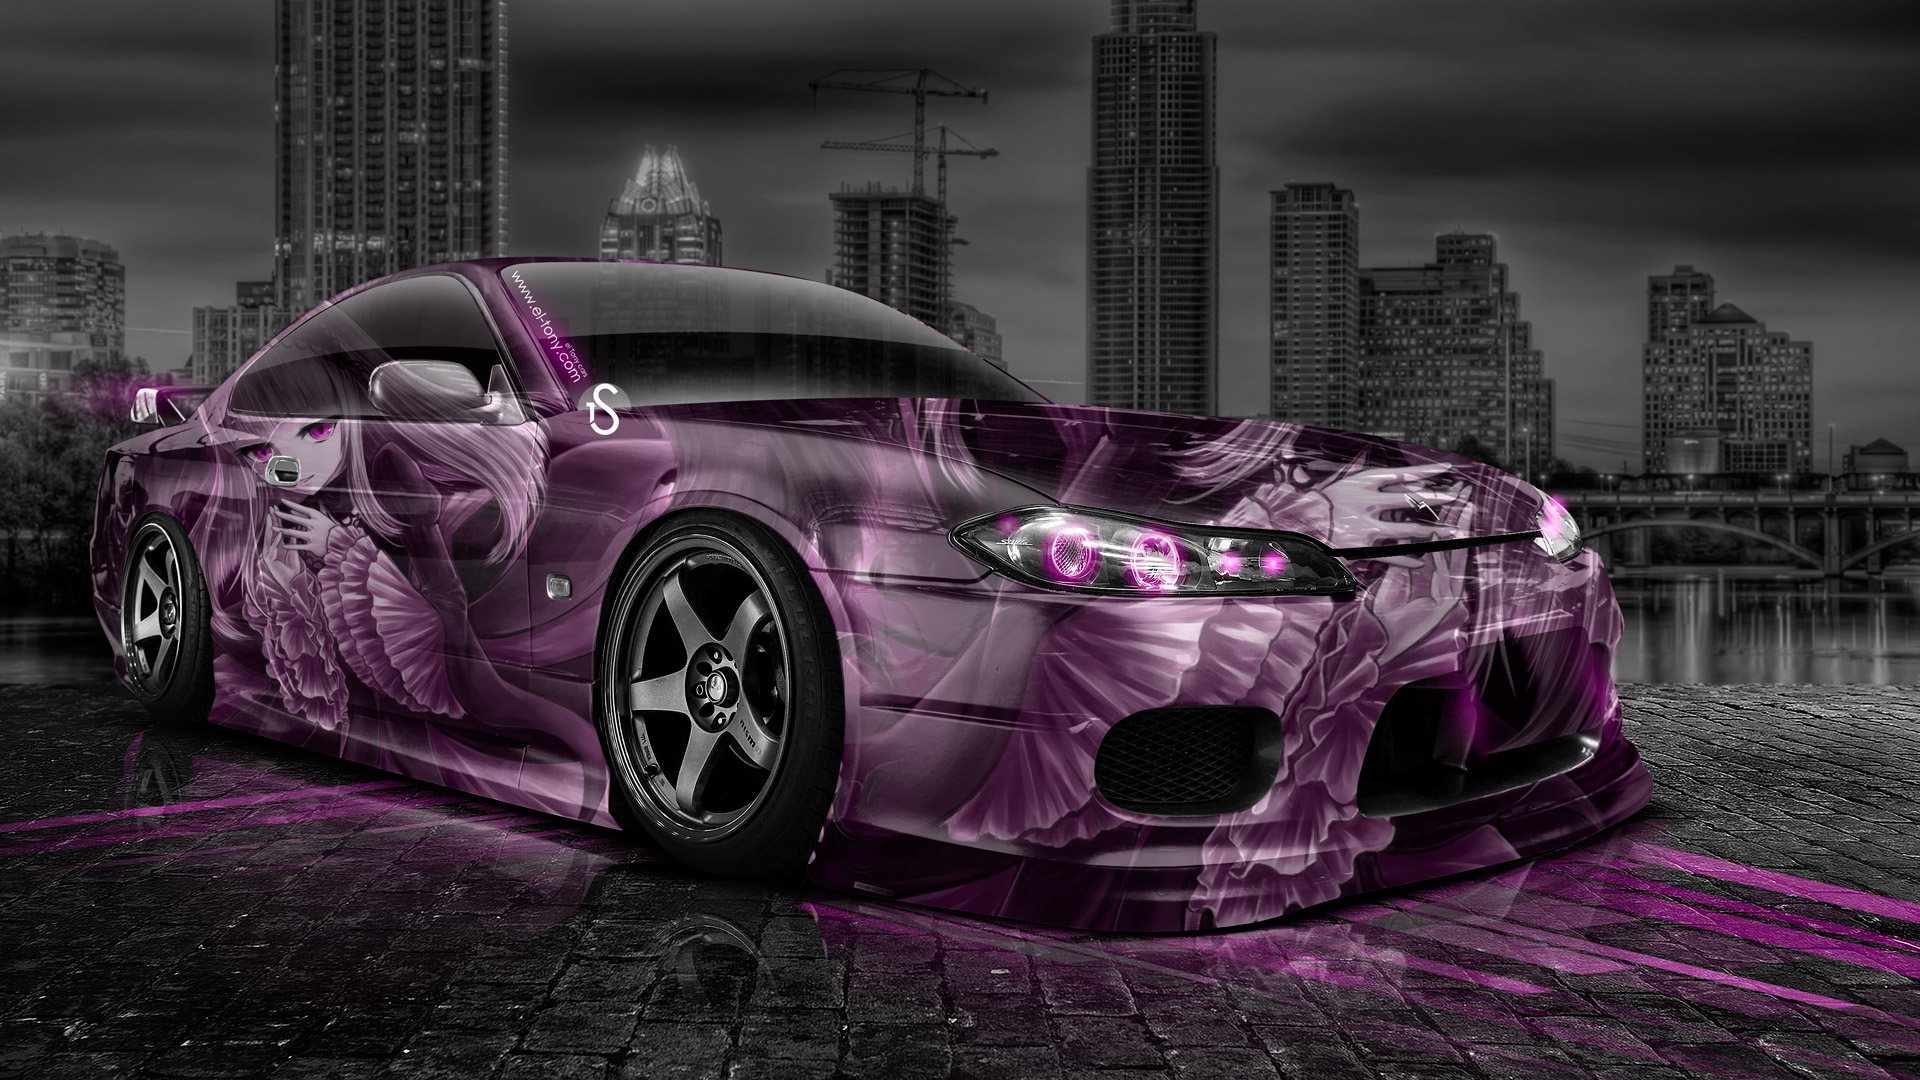 Superbe ... Nissan Silvia S15 JDM Anime Aerography City Car 2014